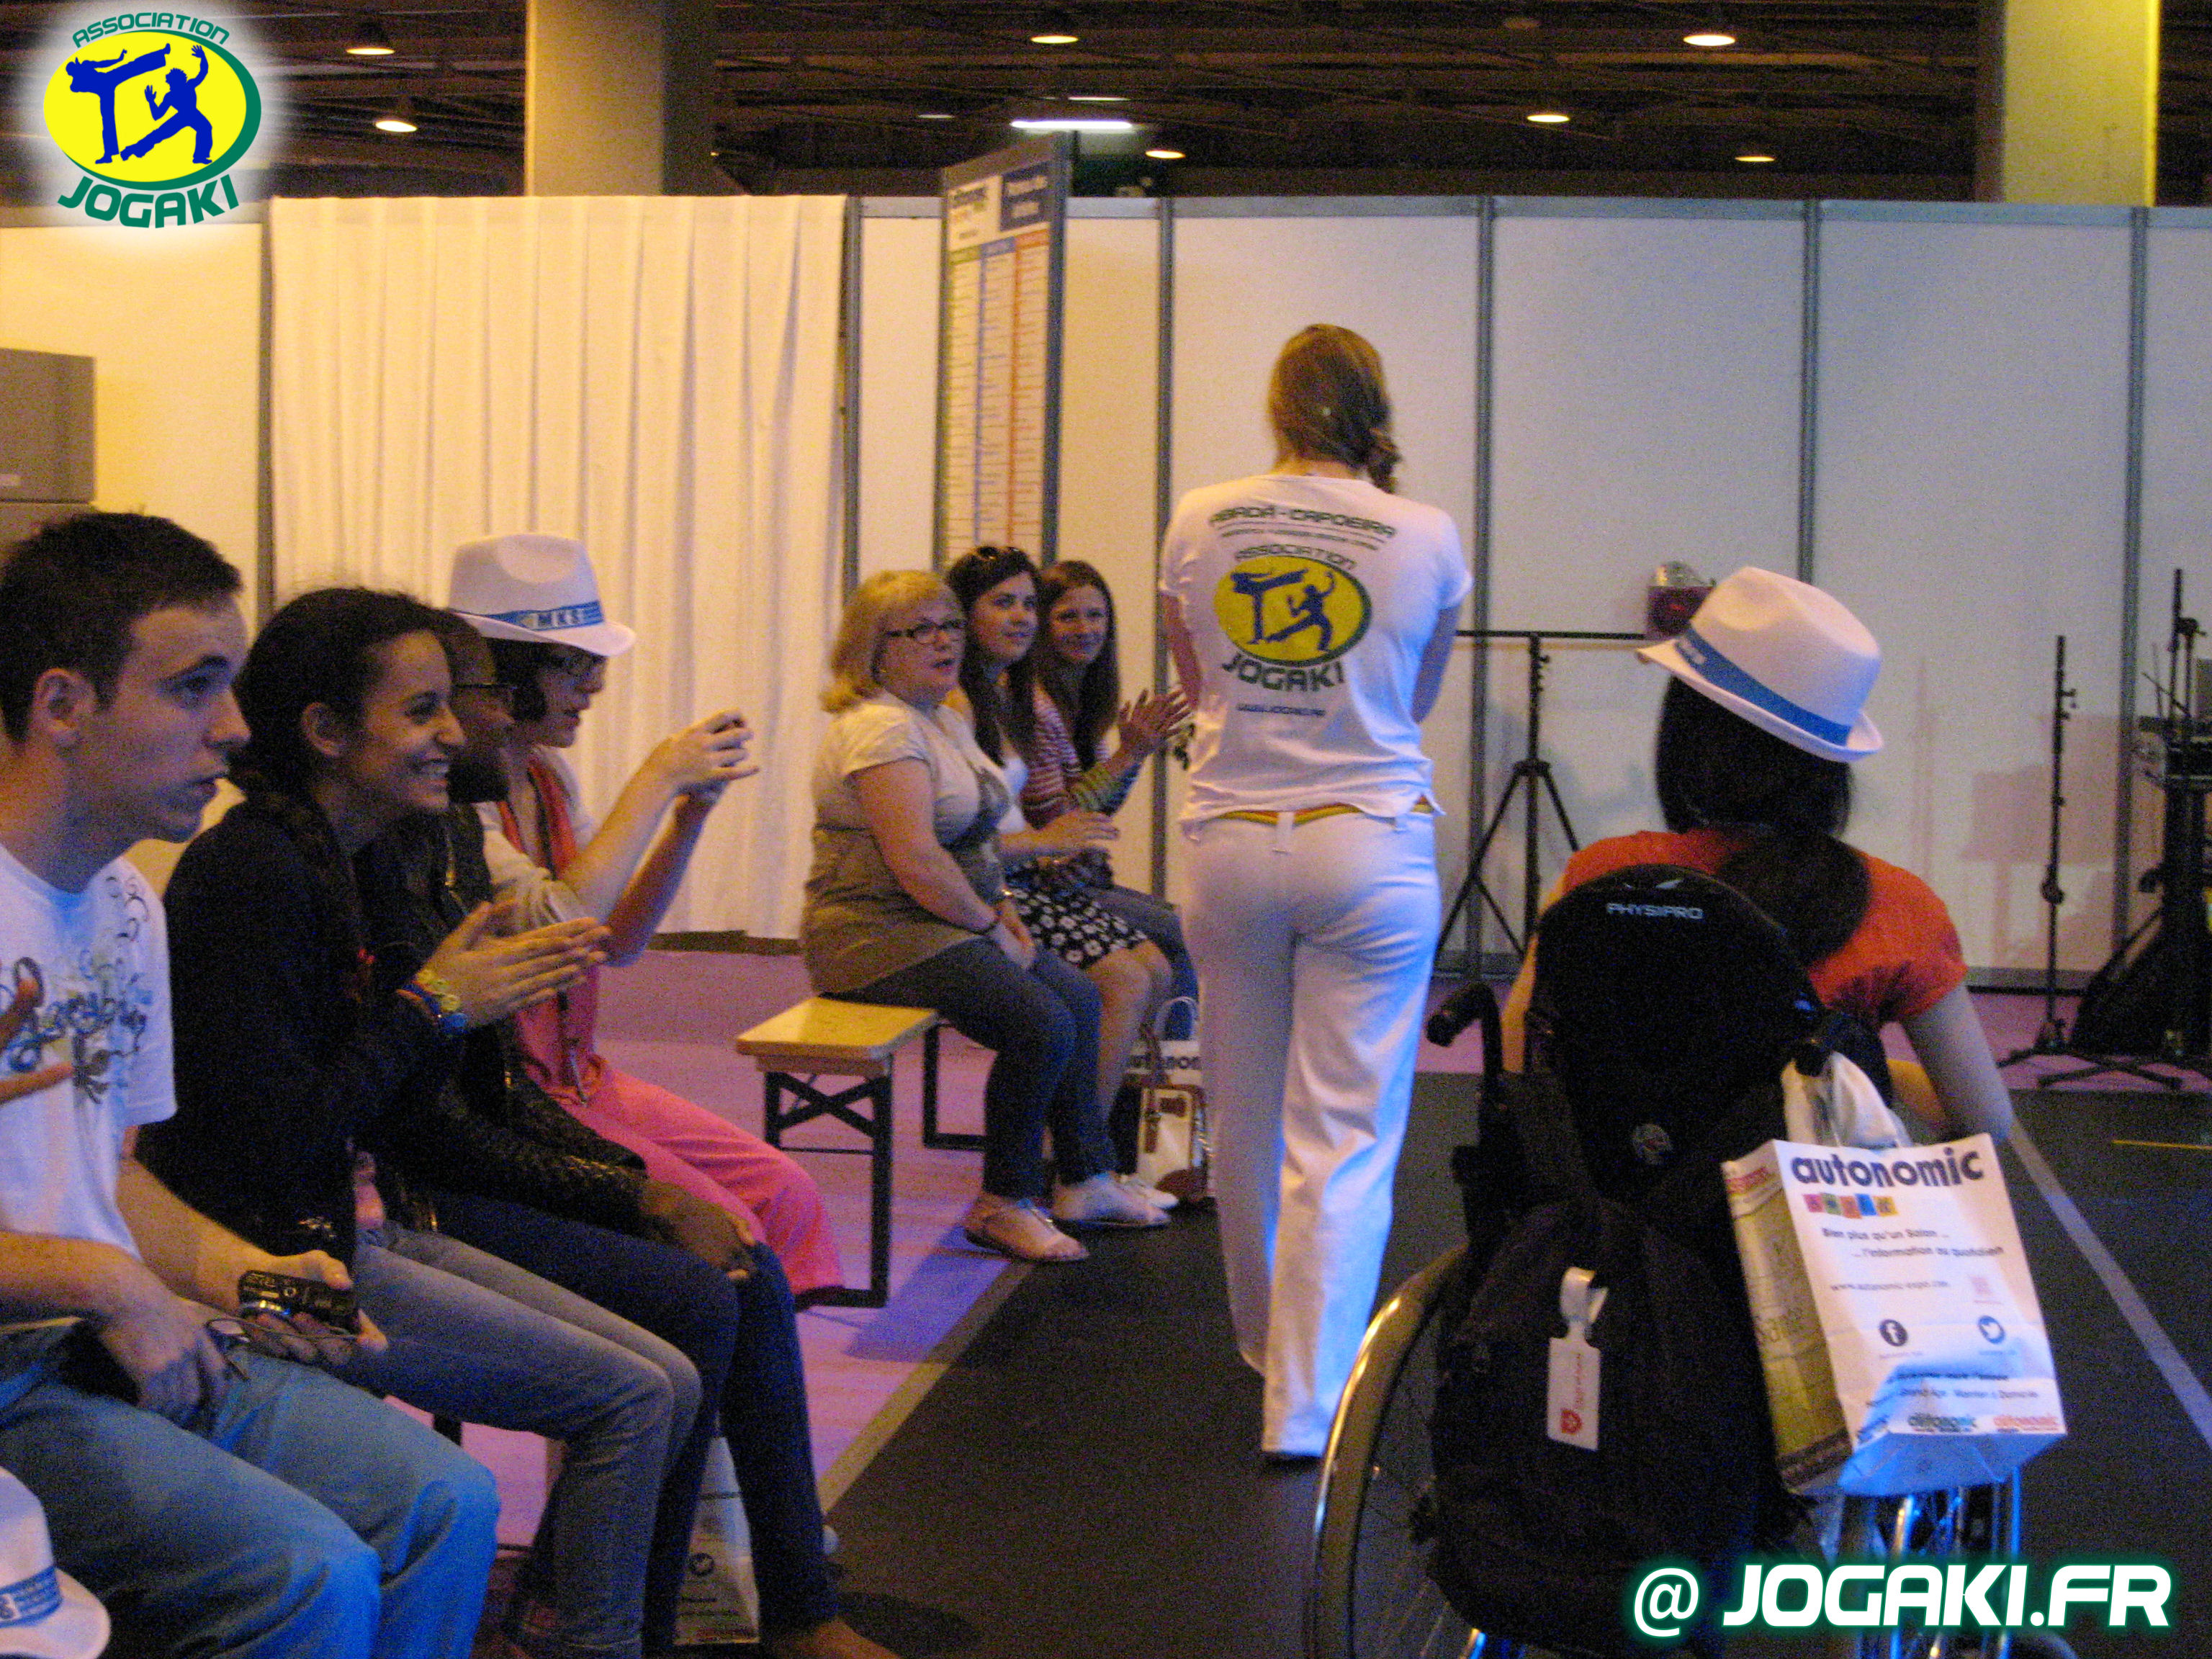 Club de rencontre paris 15